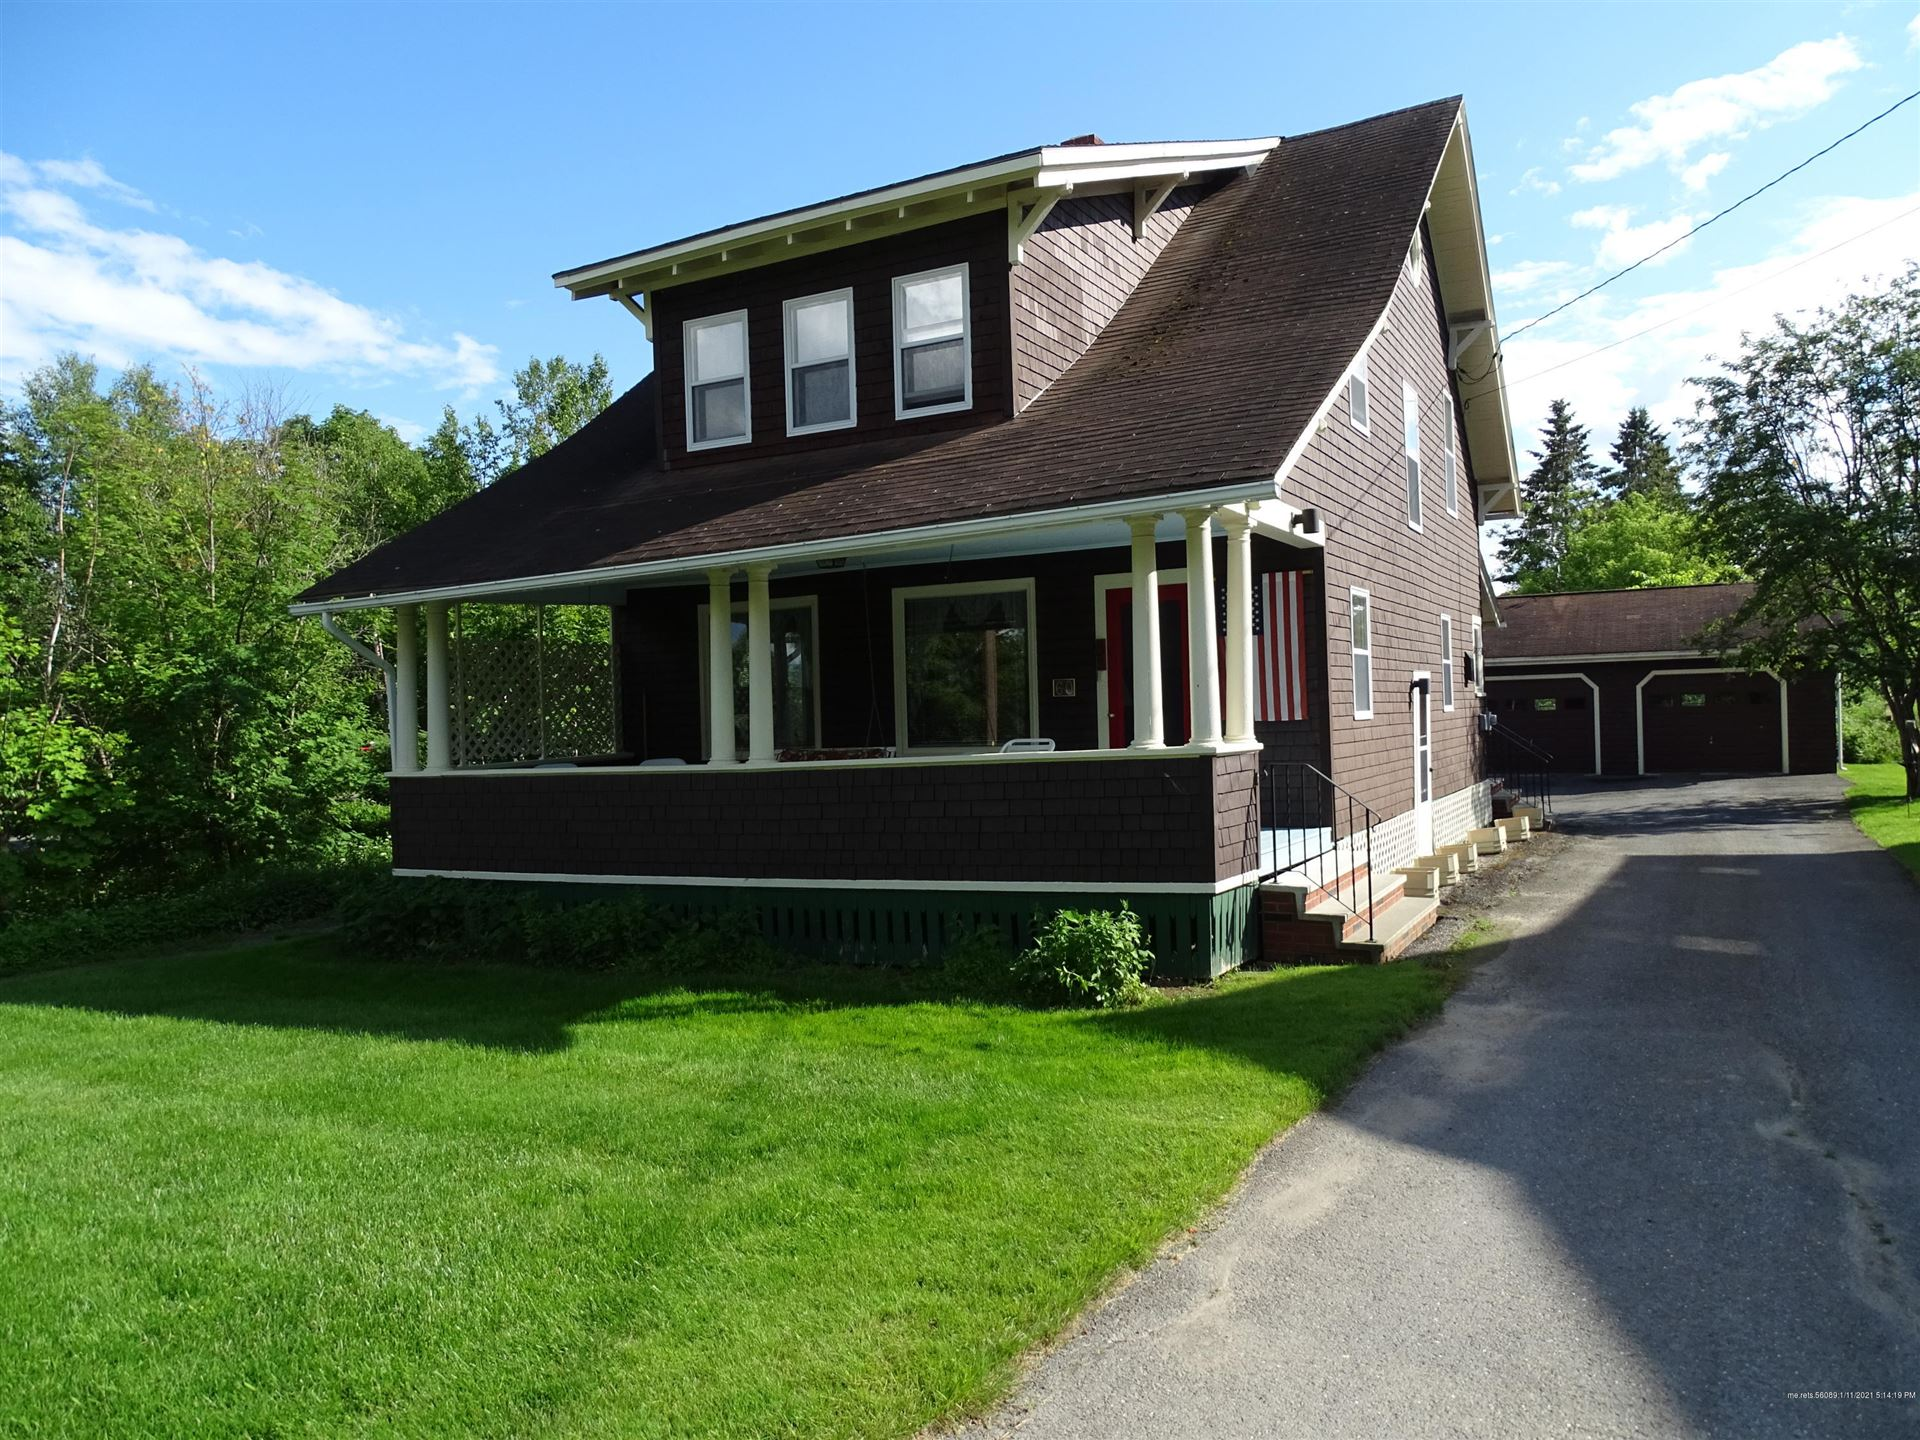 Photo of 60 Fort Hill Street, Fort Fairfield, ME 04742 (MLS # 1479501)